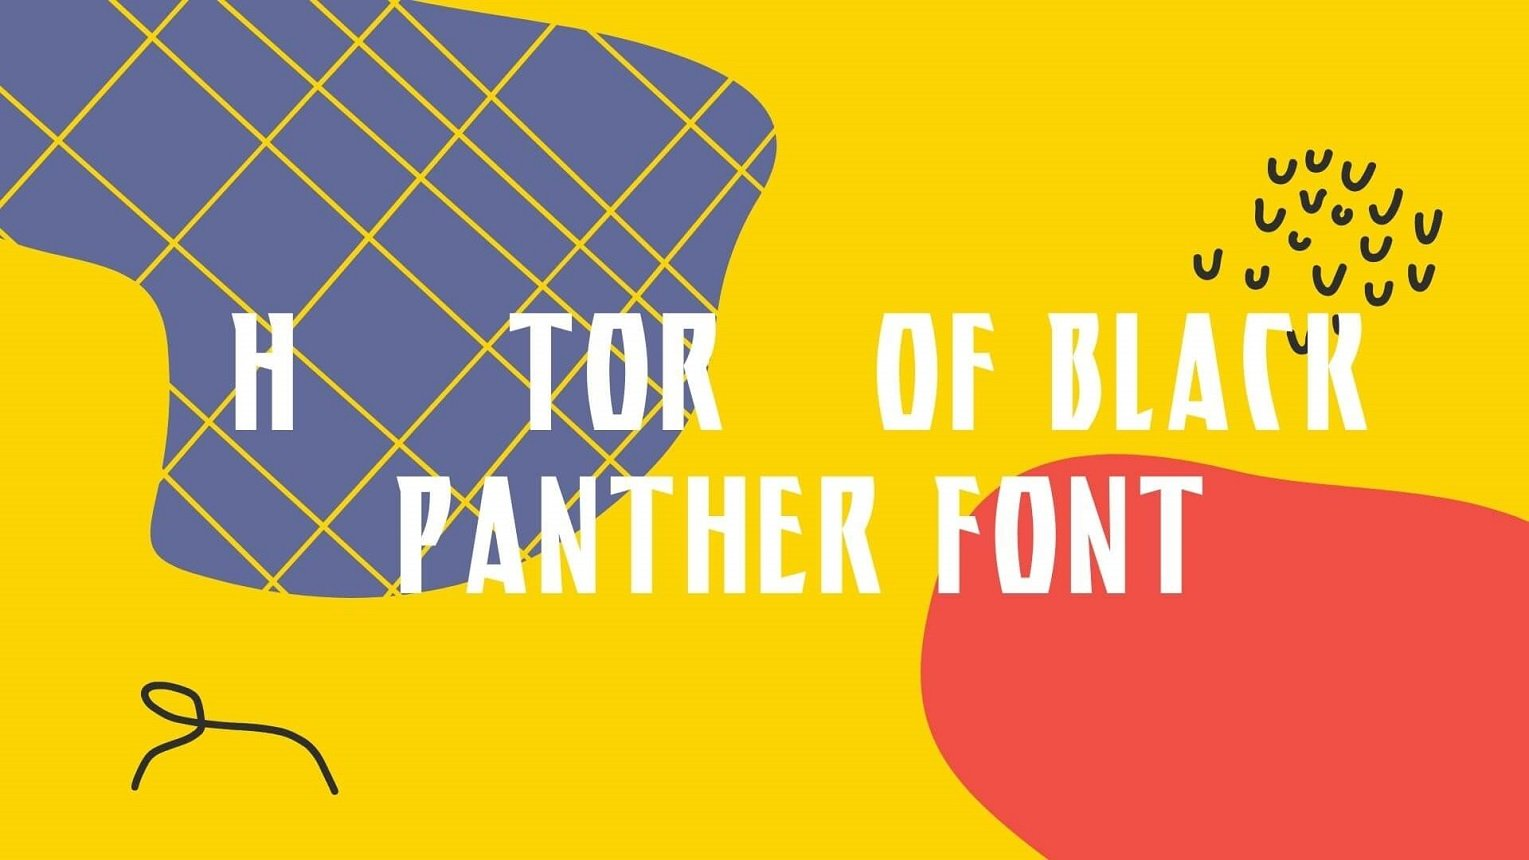 History of Black Panther Font